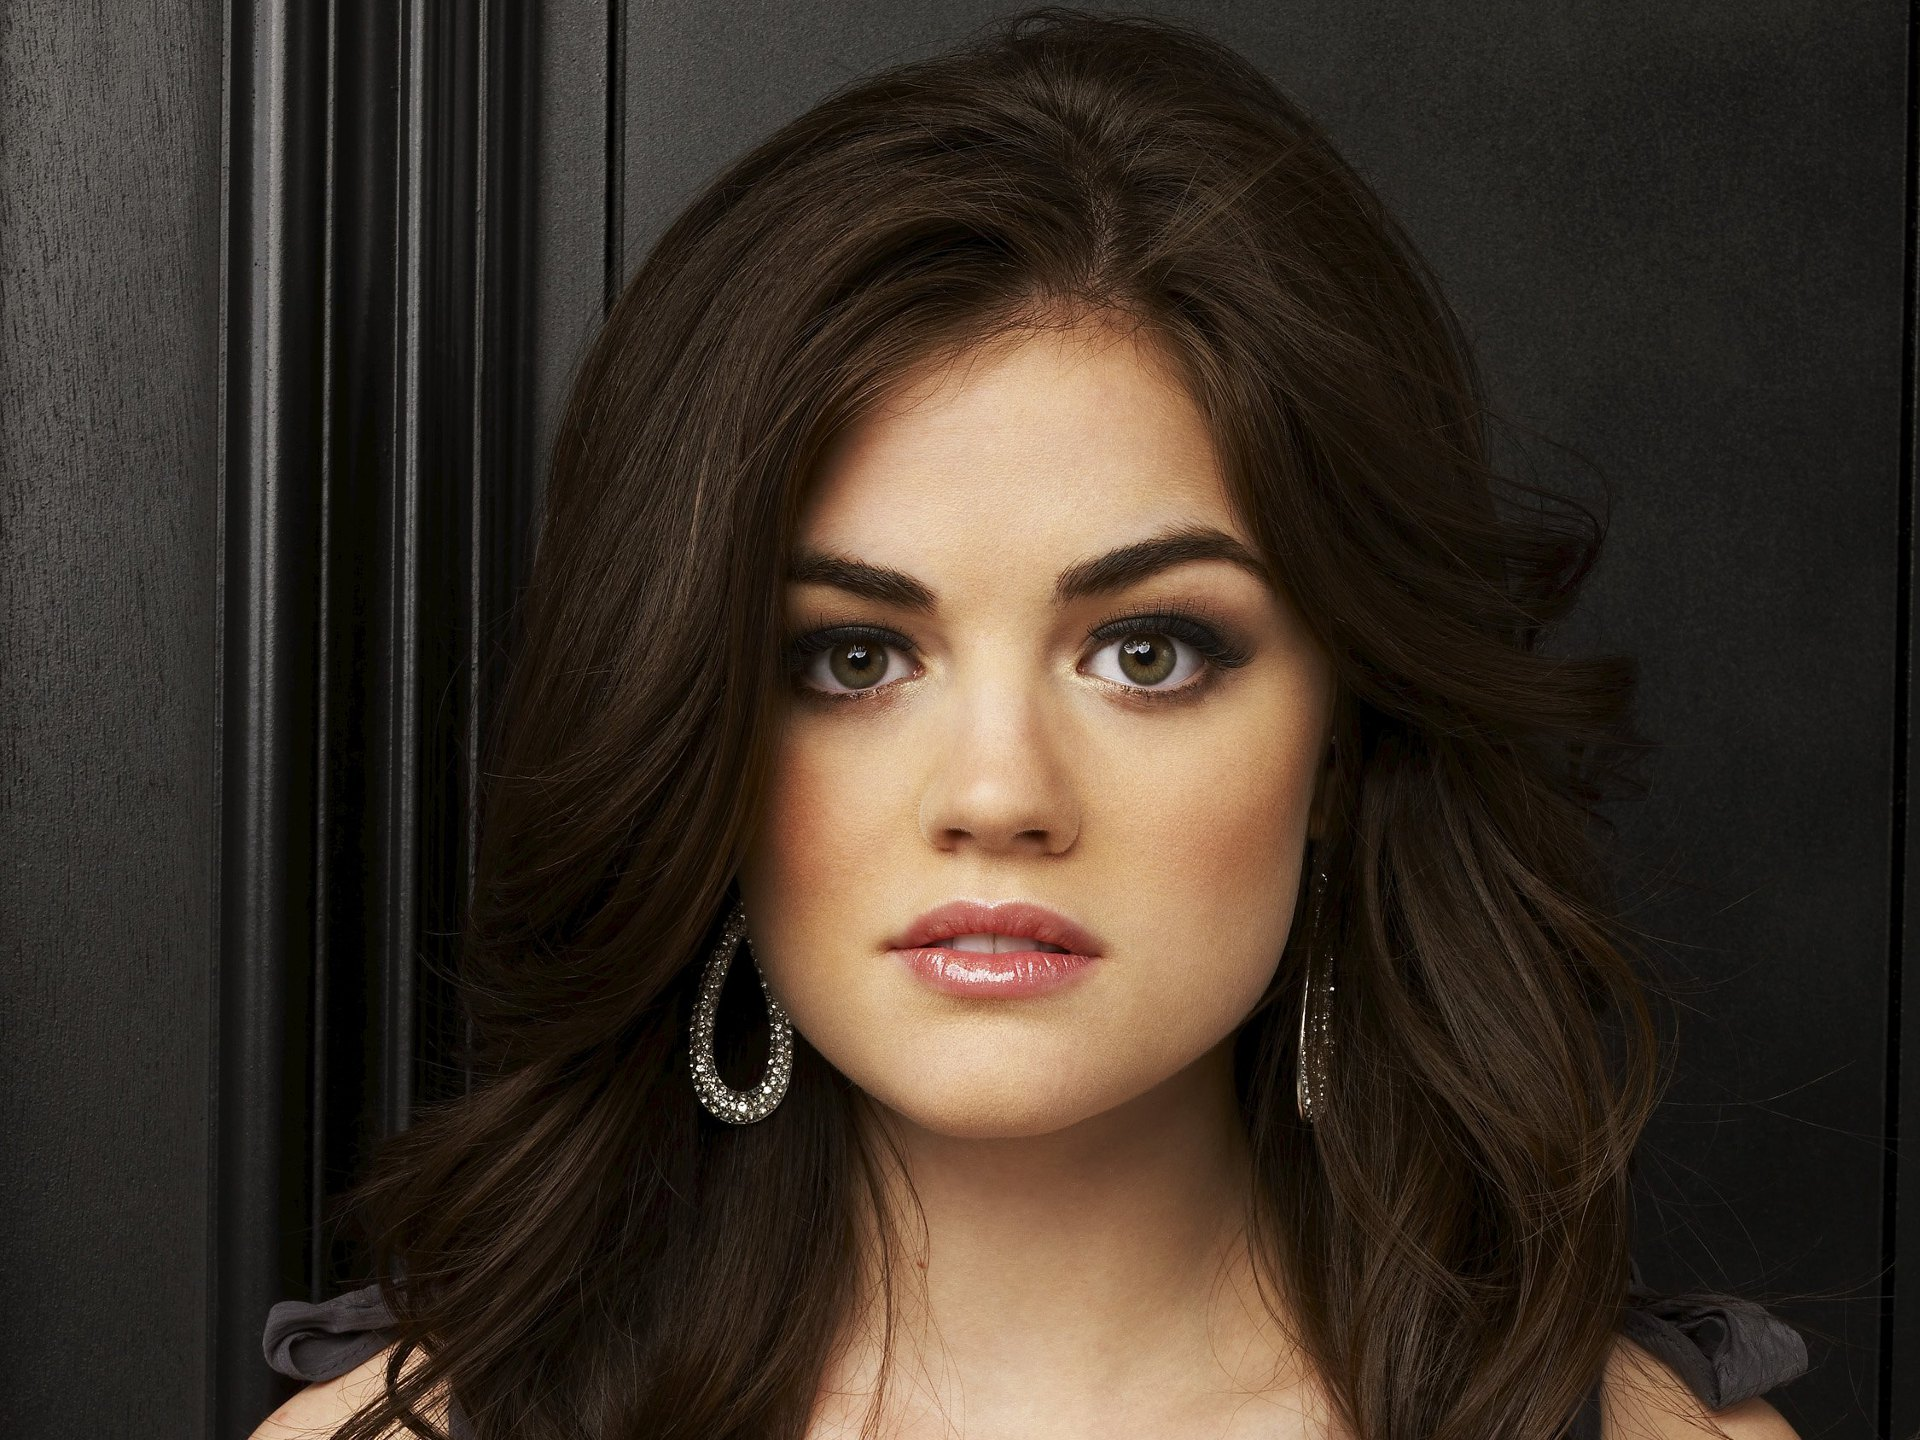 New Amazing Lucy Hale hd wallpaper Wallpaper